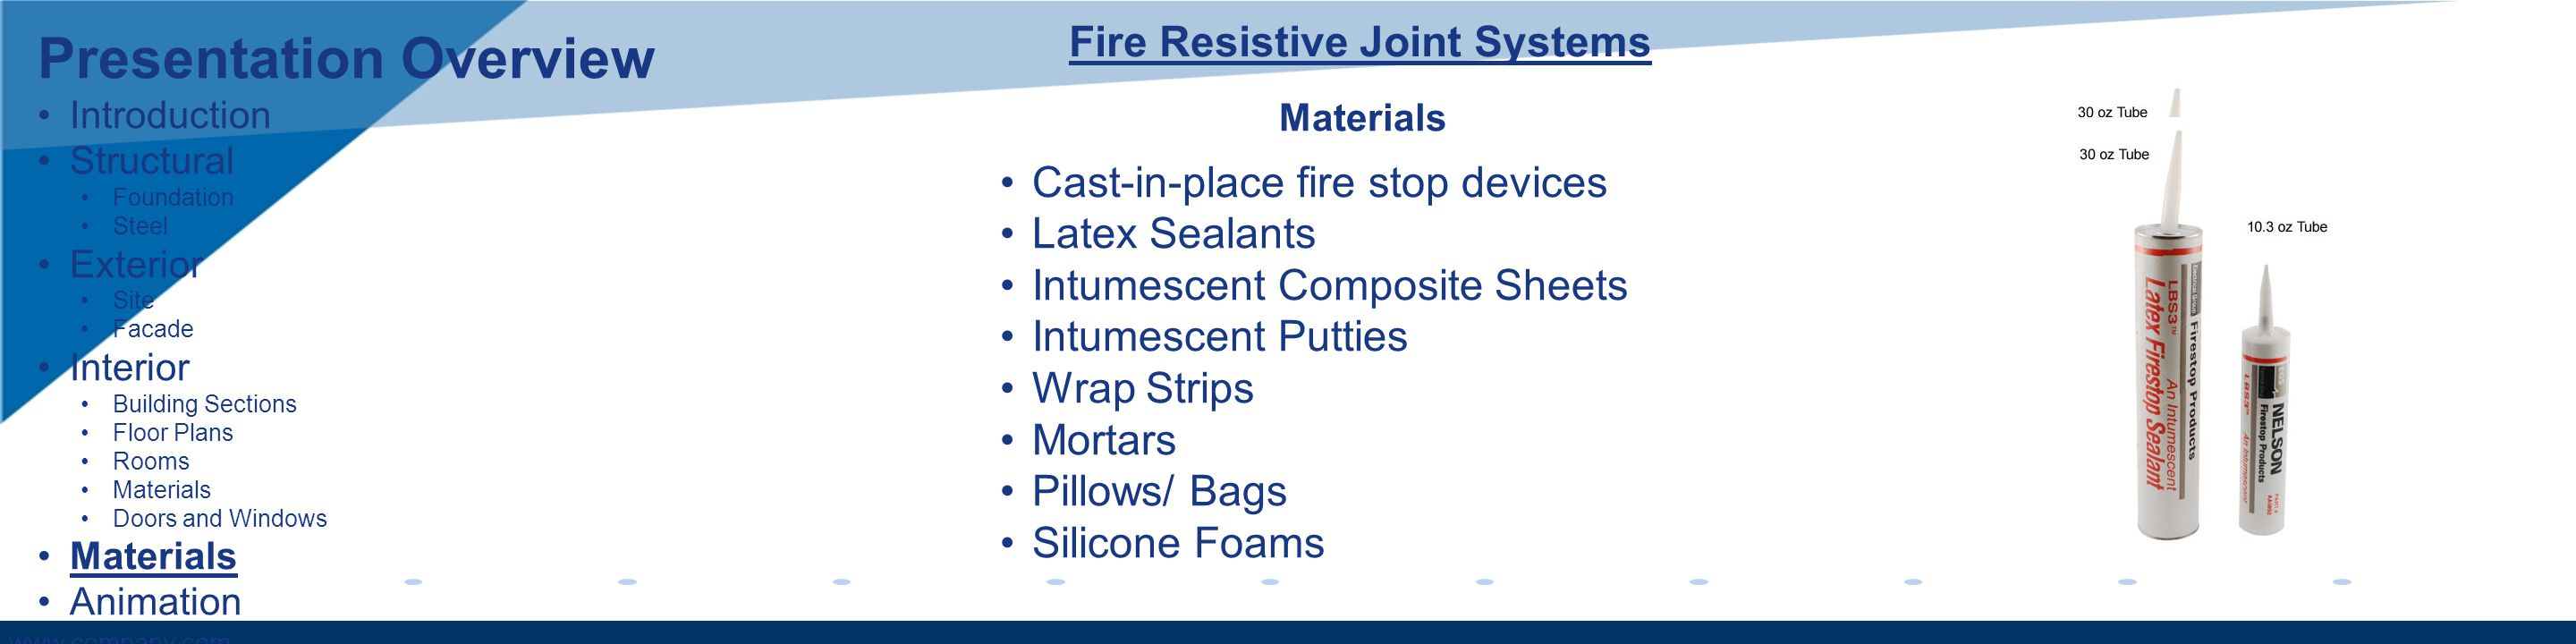 www.company.com Materials Cast-in-place fire stop devices Latex Sealants Intumescent Composite Sheets Intumescent Putties Wrap Strips Mortars Pillows/ Bags Silicone Foams Fire Resistive Joint Systems Presentation Overview Introduction Structural Foundation Steel Exterior Site Facade Interior Building Sections Floor Plans Rooms Materials Doors and Windows Materials Animation